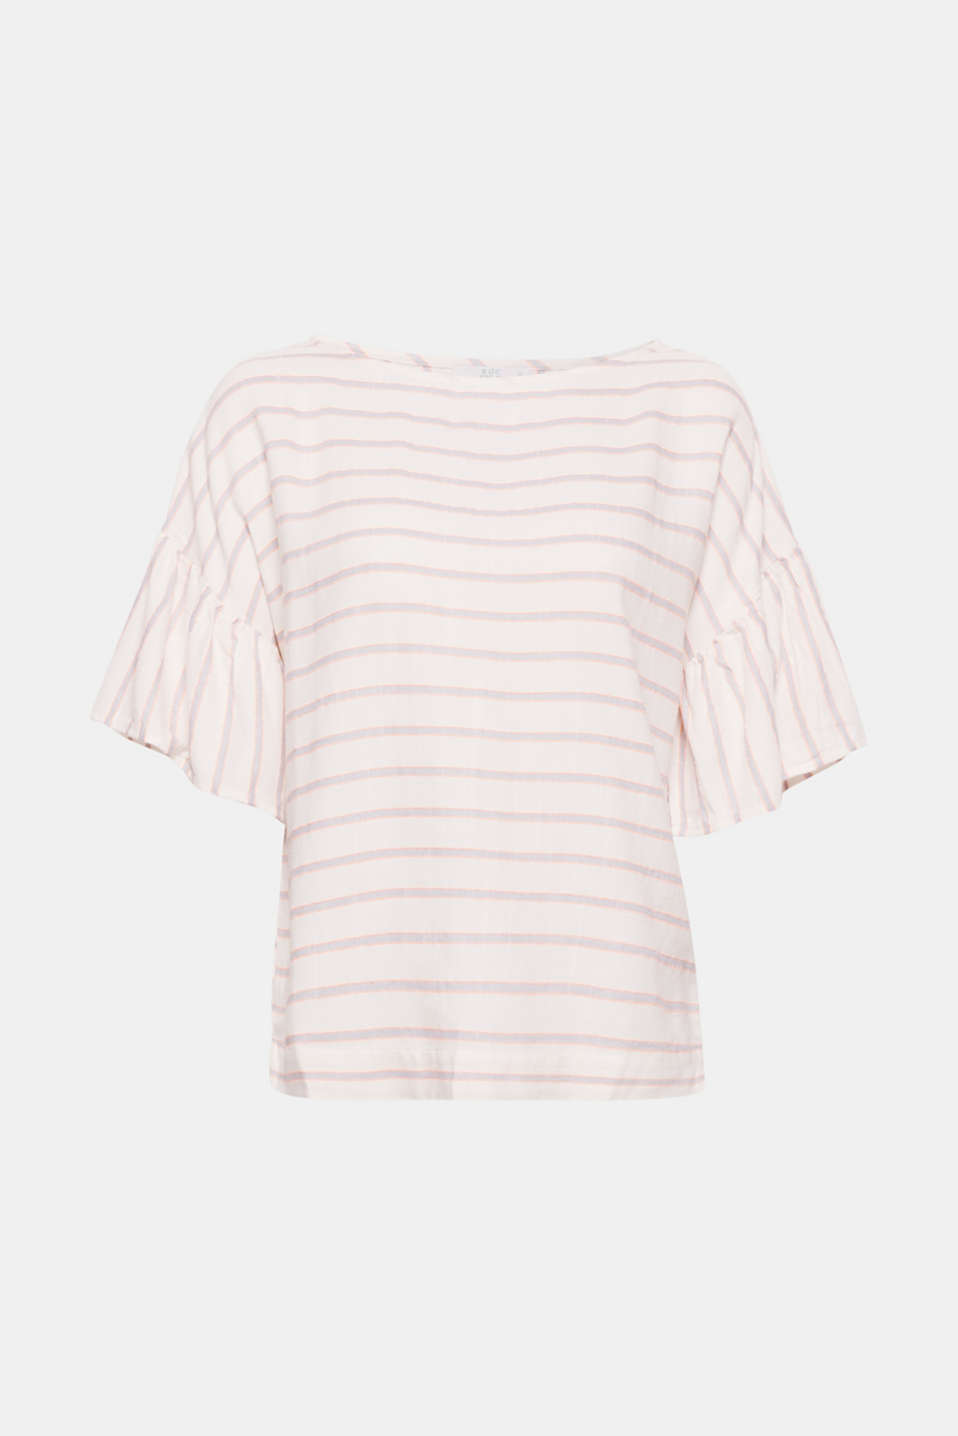 Sporty with bold stripes yet feminine thanks to the floaty cap sleeves. This blouse is a must-have piece for a light, spring look.